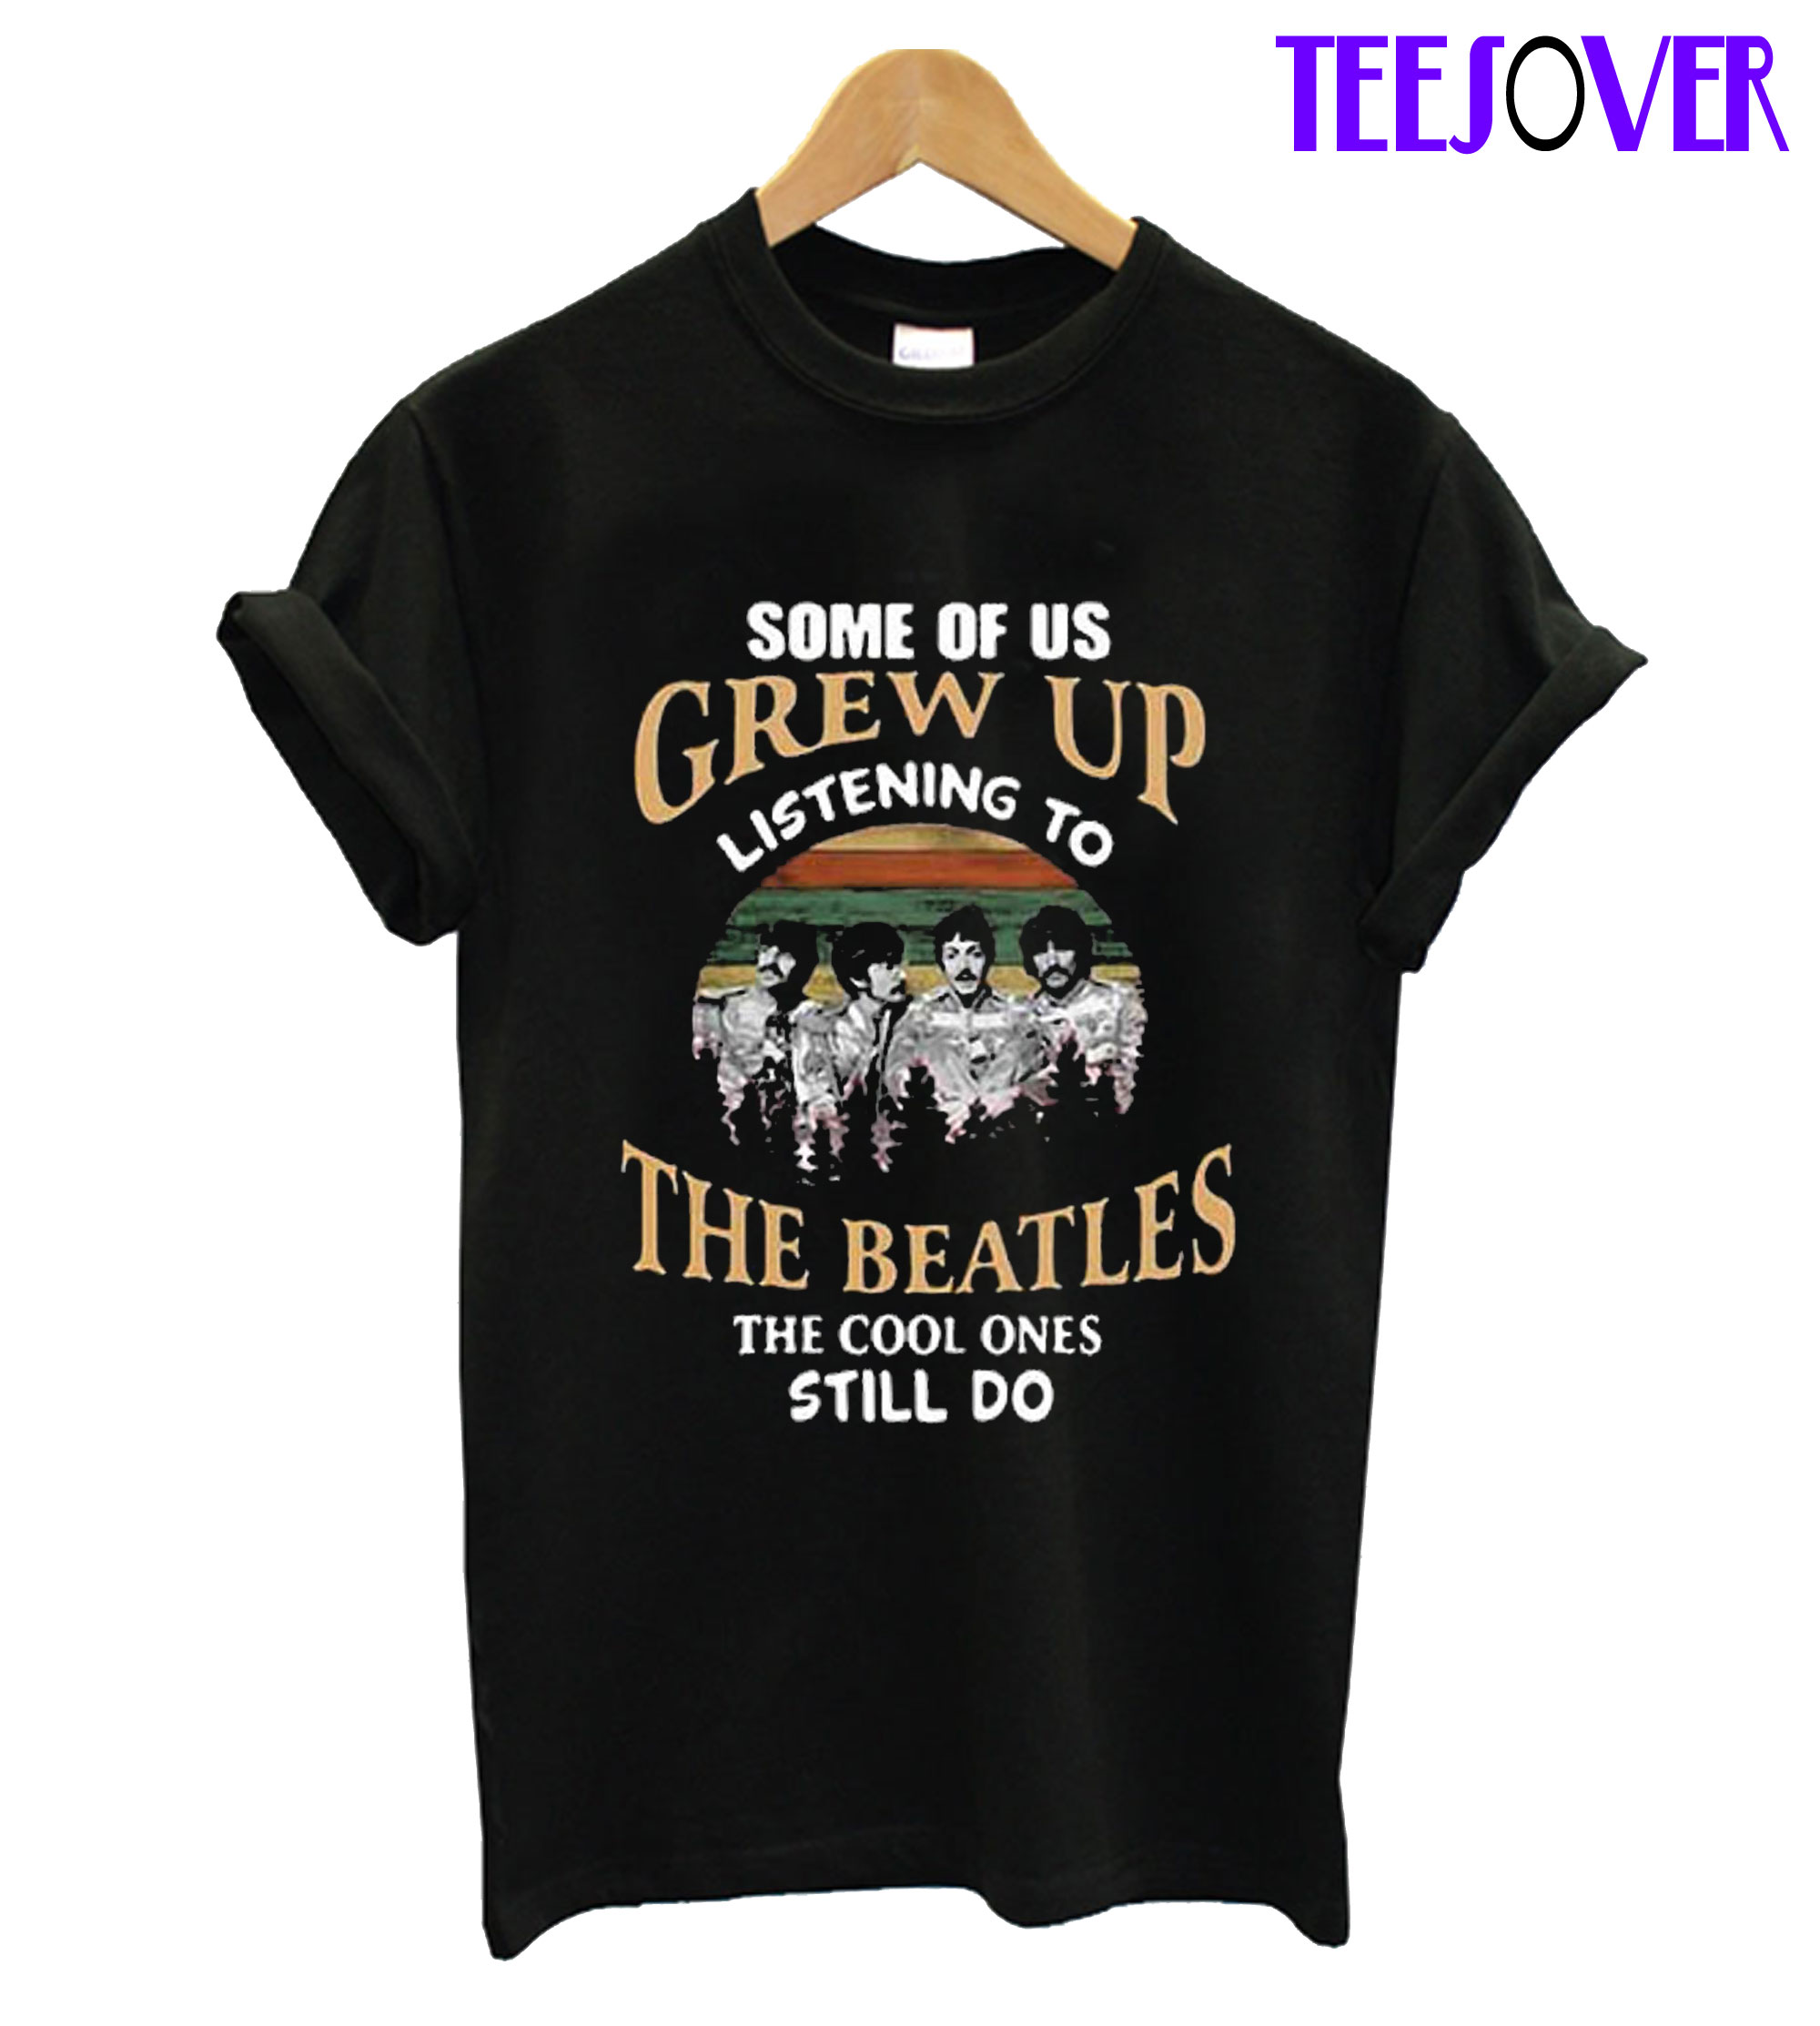 Some Of Us Grew Up Listening To The Beatles T-Shirt Men Women Tee Size S-3XL